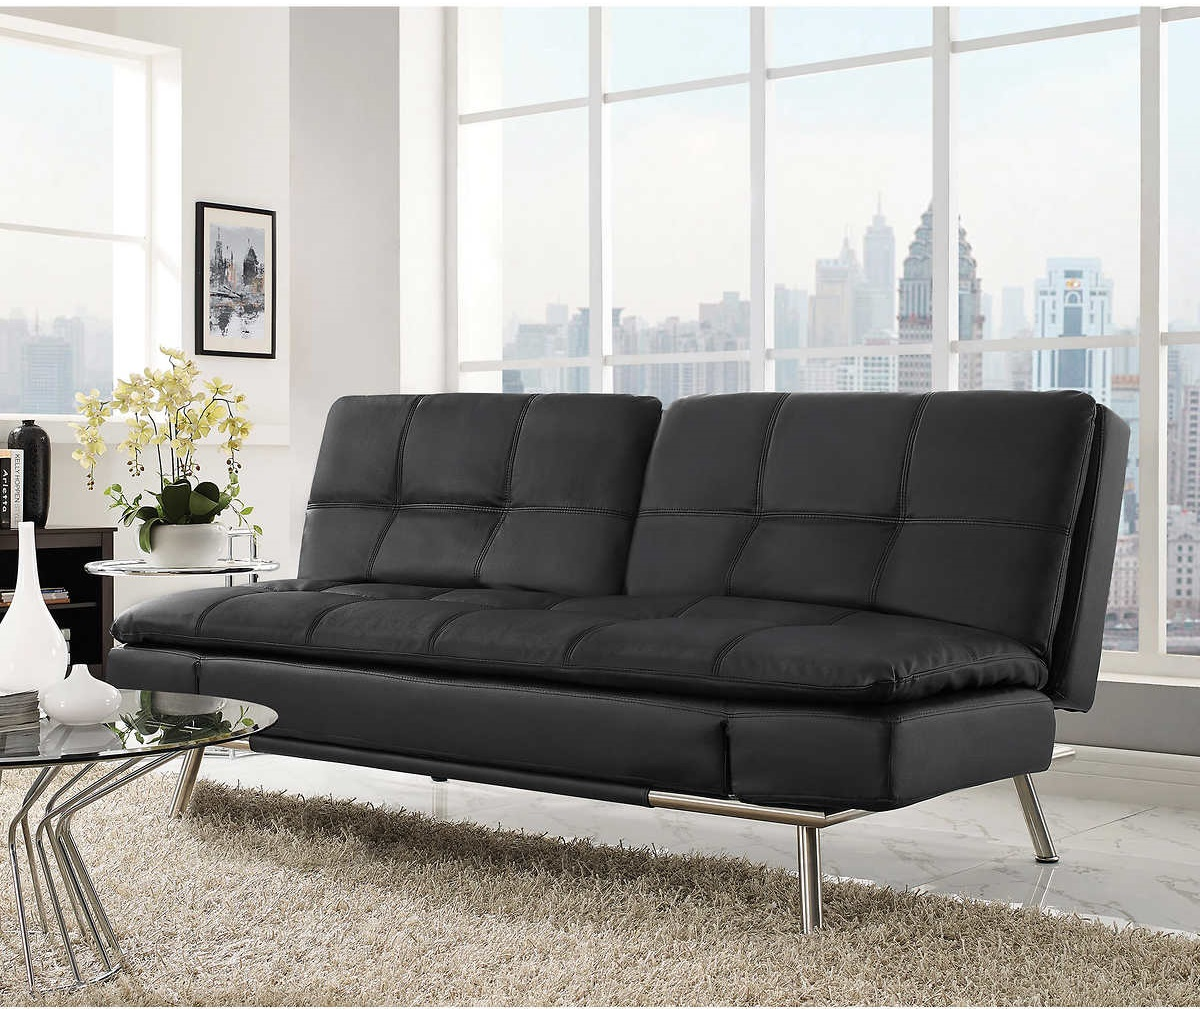 Image of: Contemporary Costco Futon Sofa